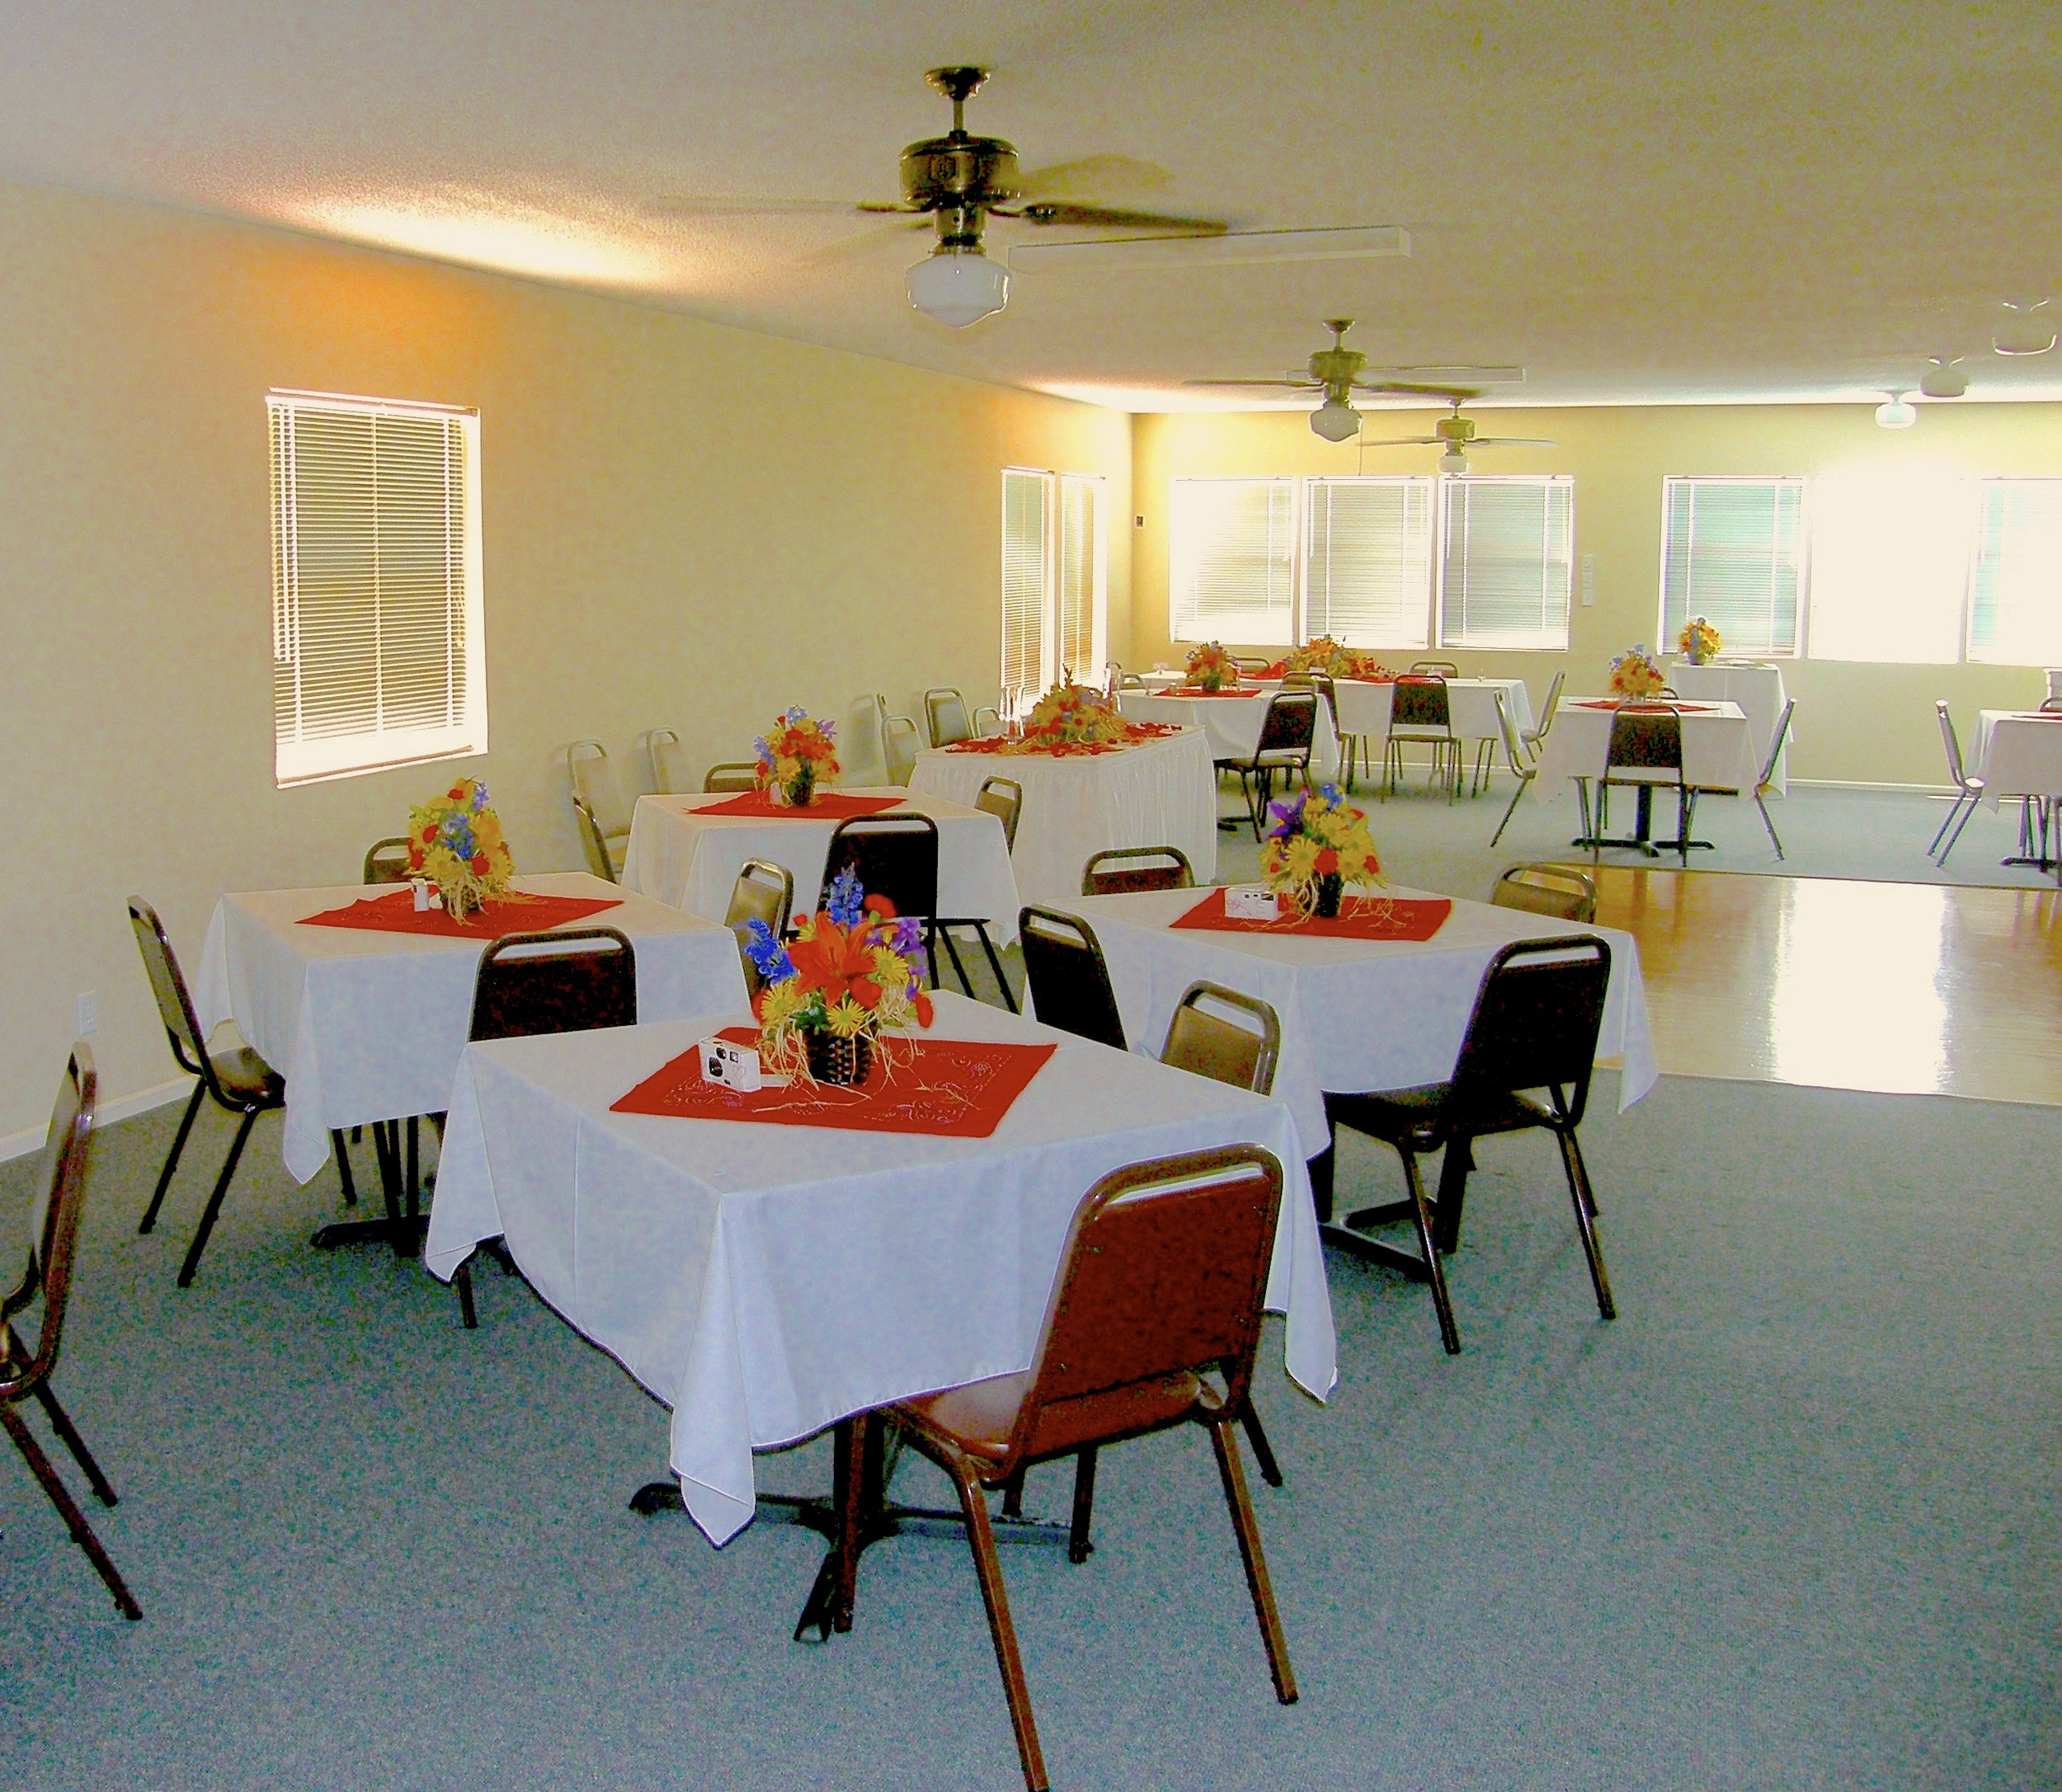 Example of Dinner / Party set-up in Clubhouse upstairs.